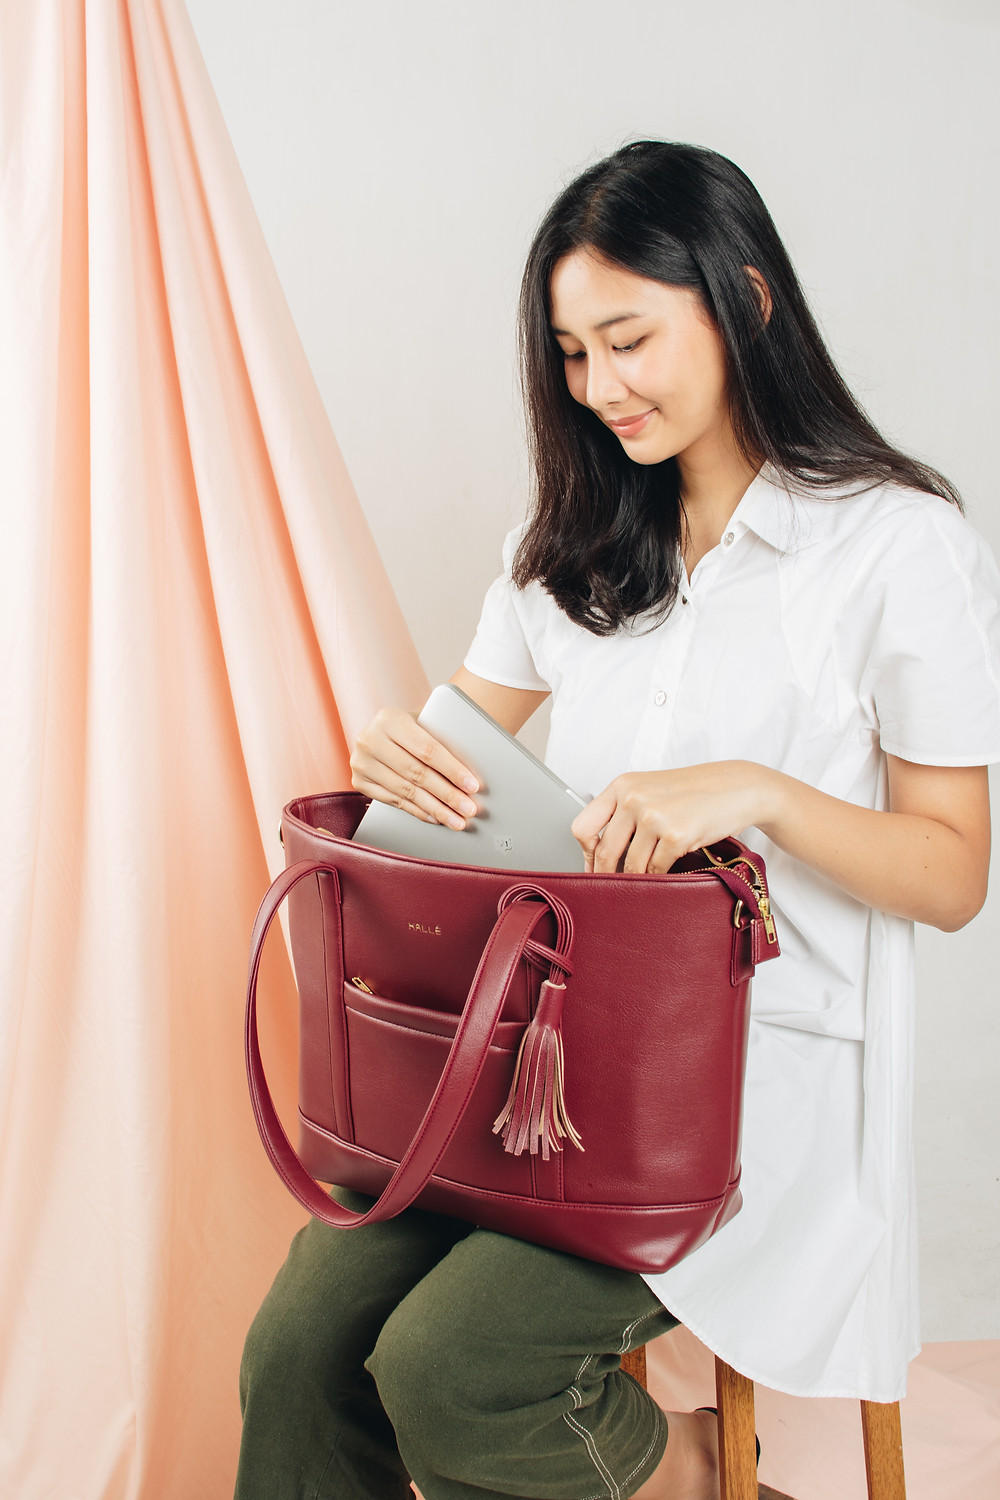 All Kalle bags combine fashion and function.